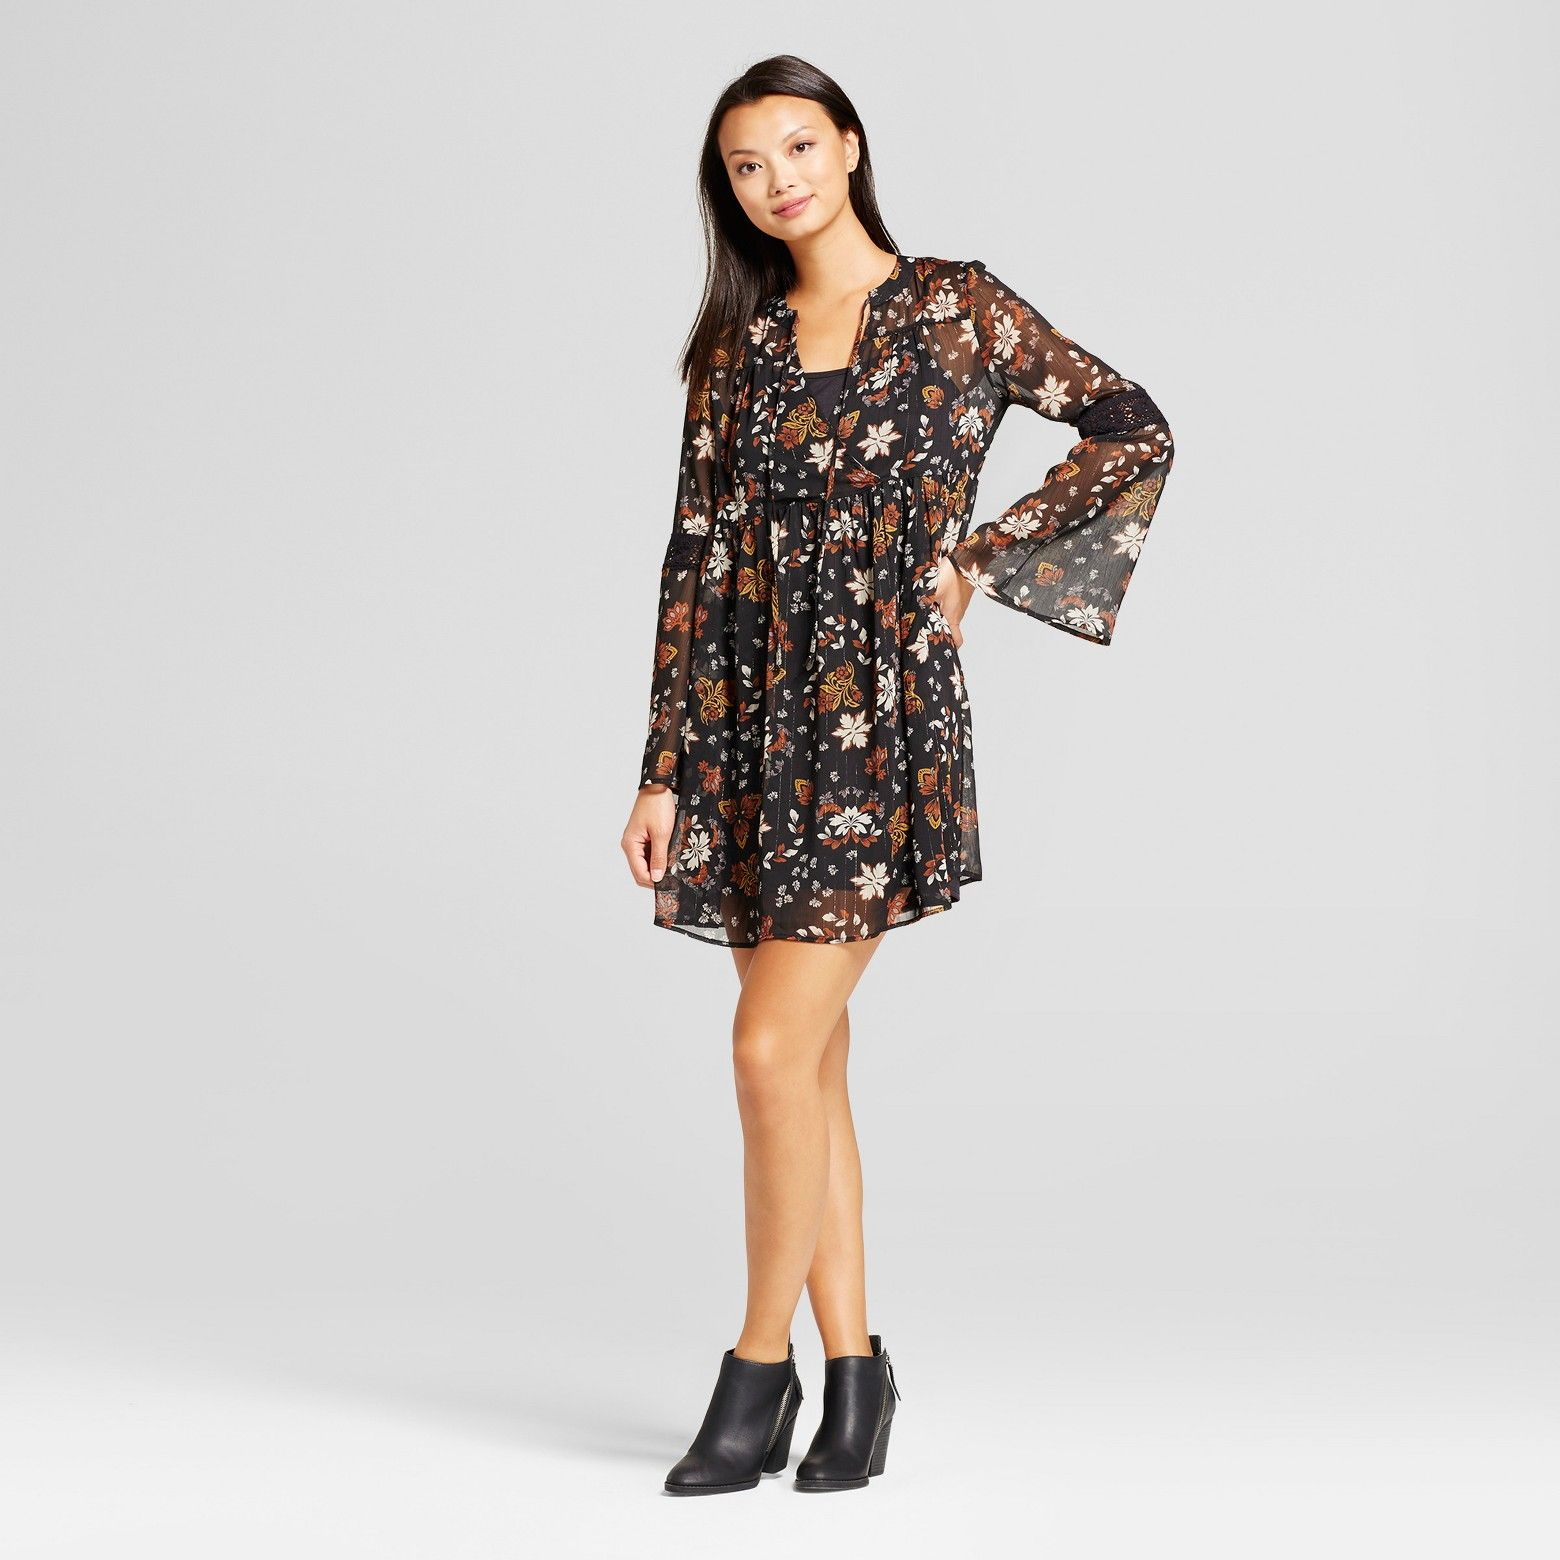 Keep your look light and flowy in the lurex print tiesleeve dress